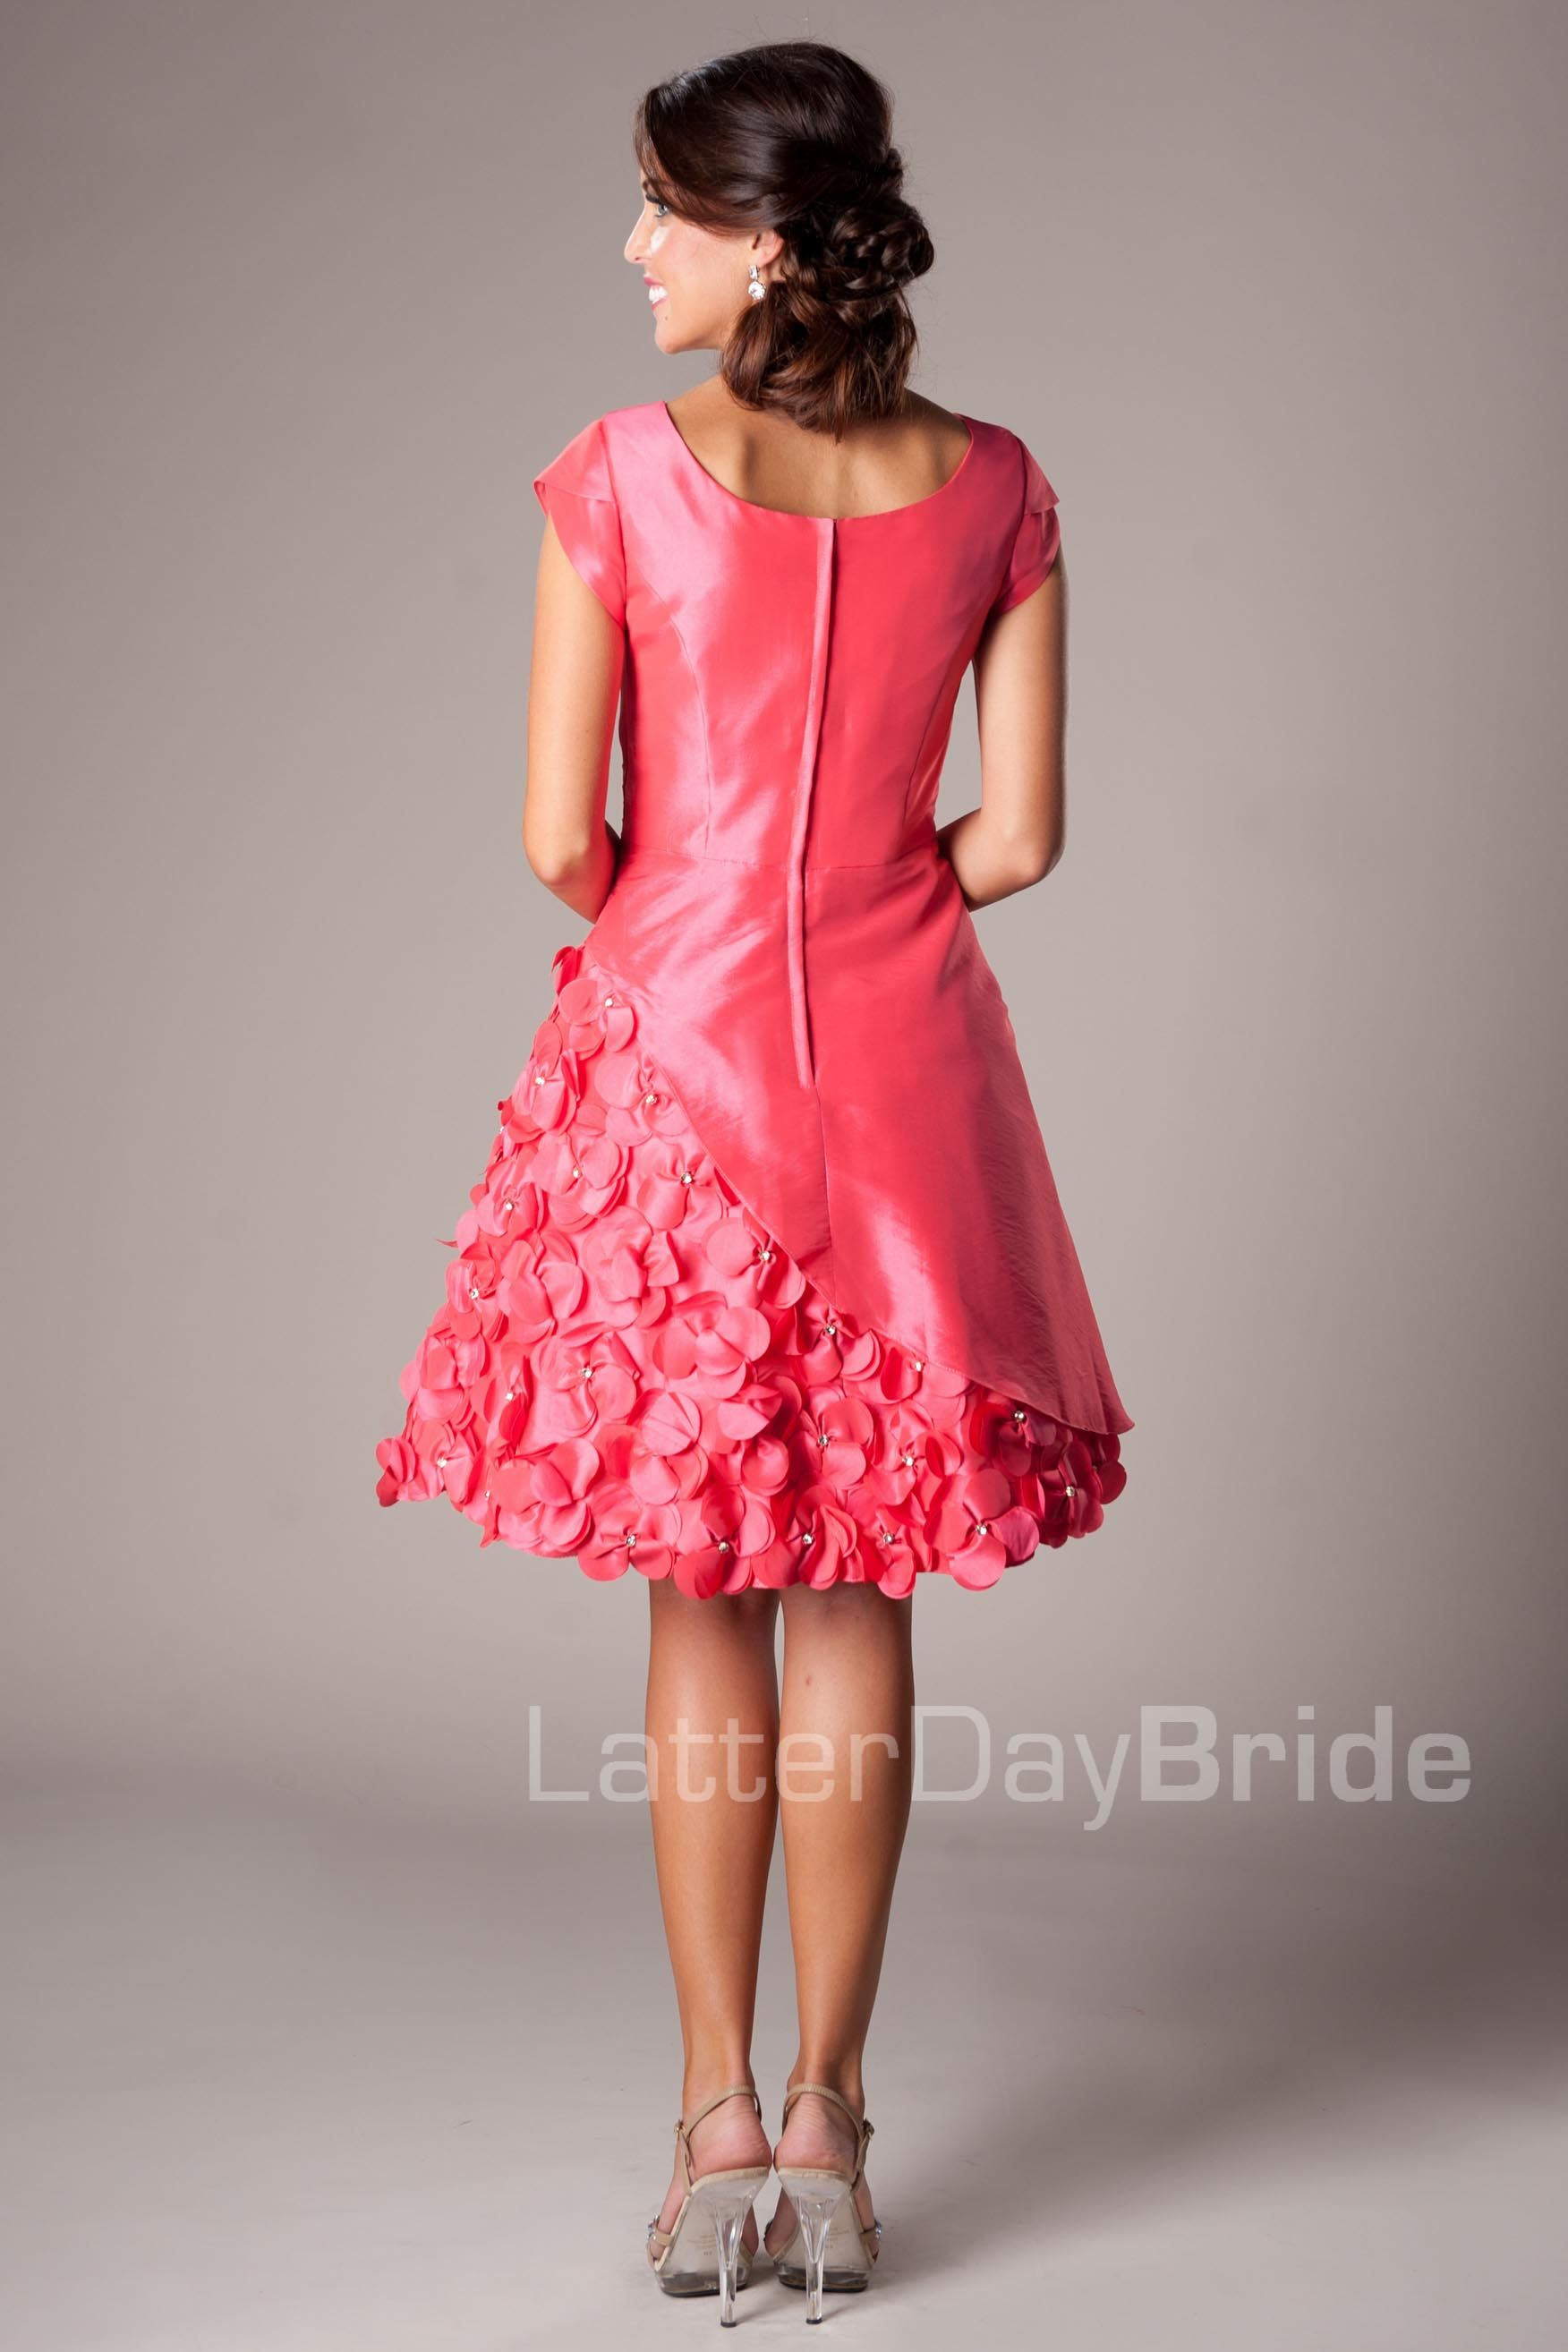 Modestpromdressjoypinkbackg so nice to wear pinterest